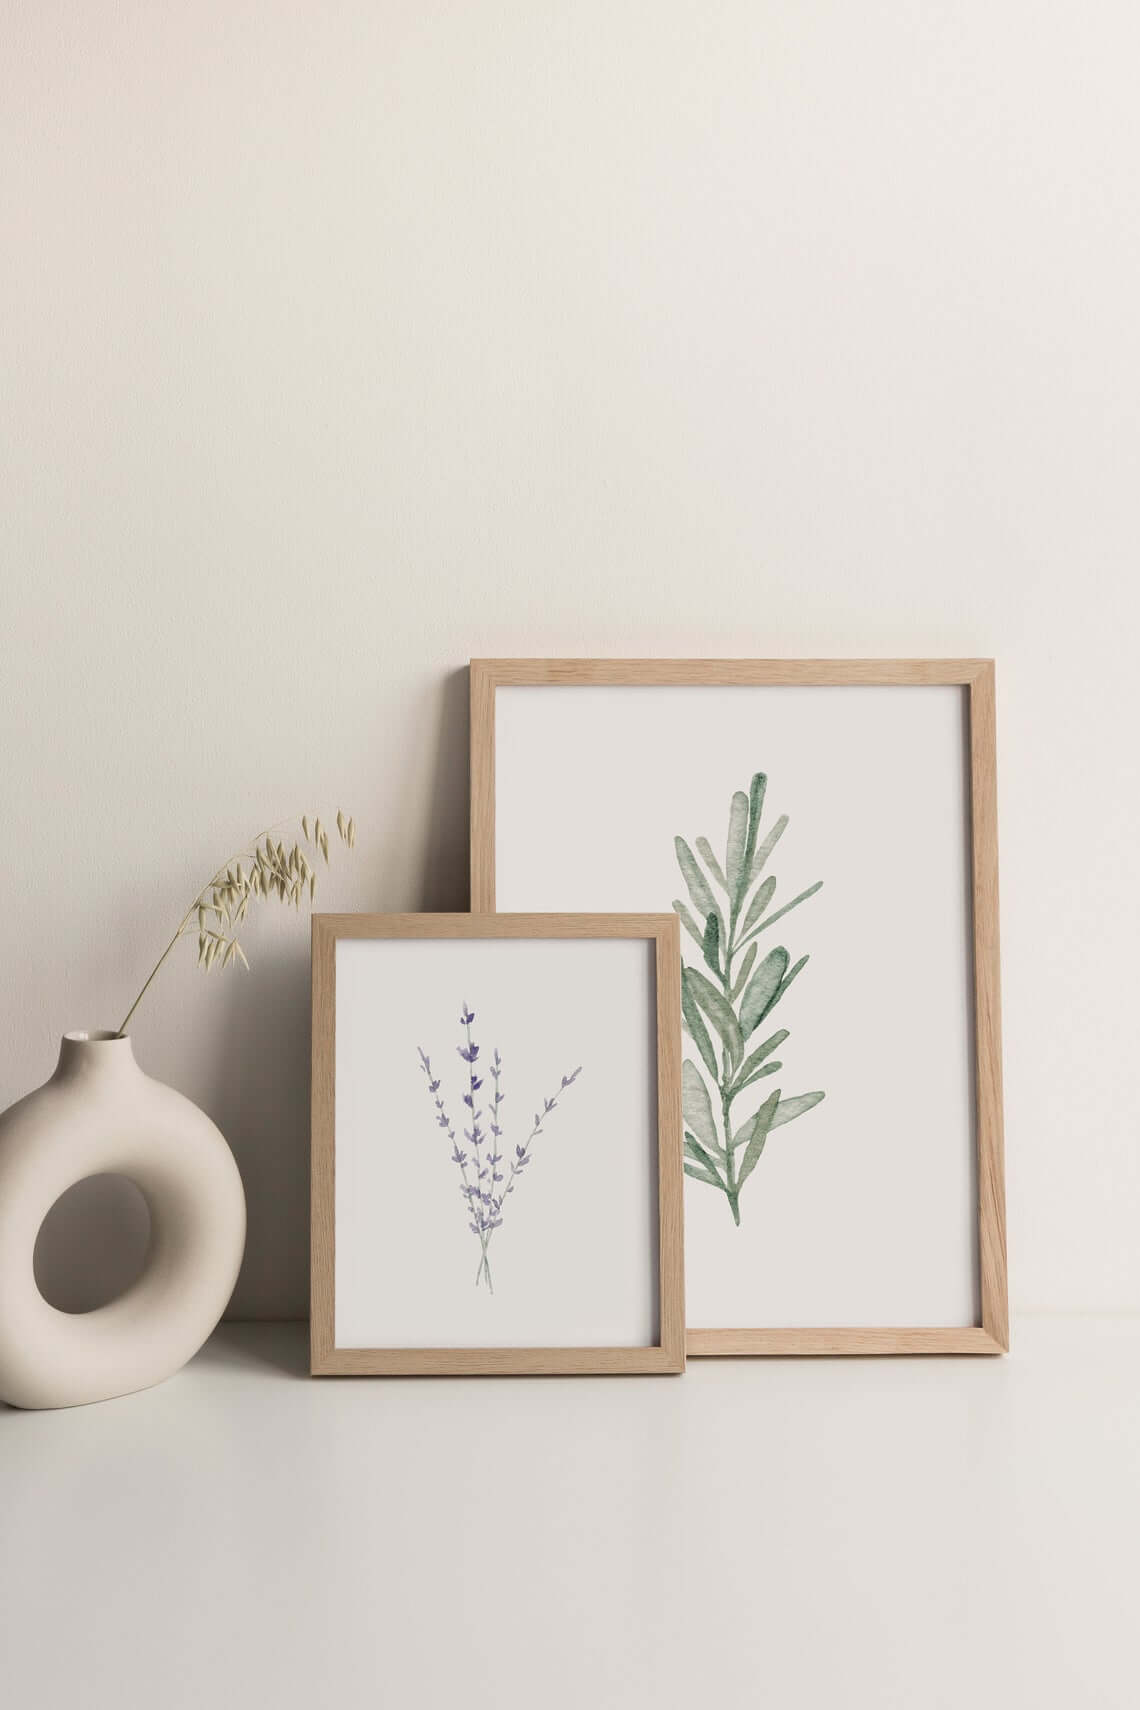 Rosemary and Lavender Art Prints